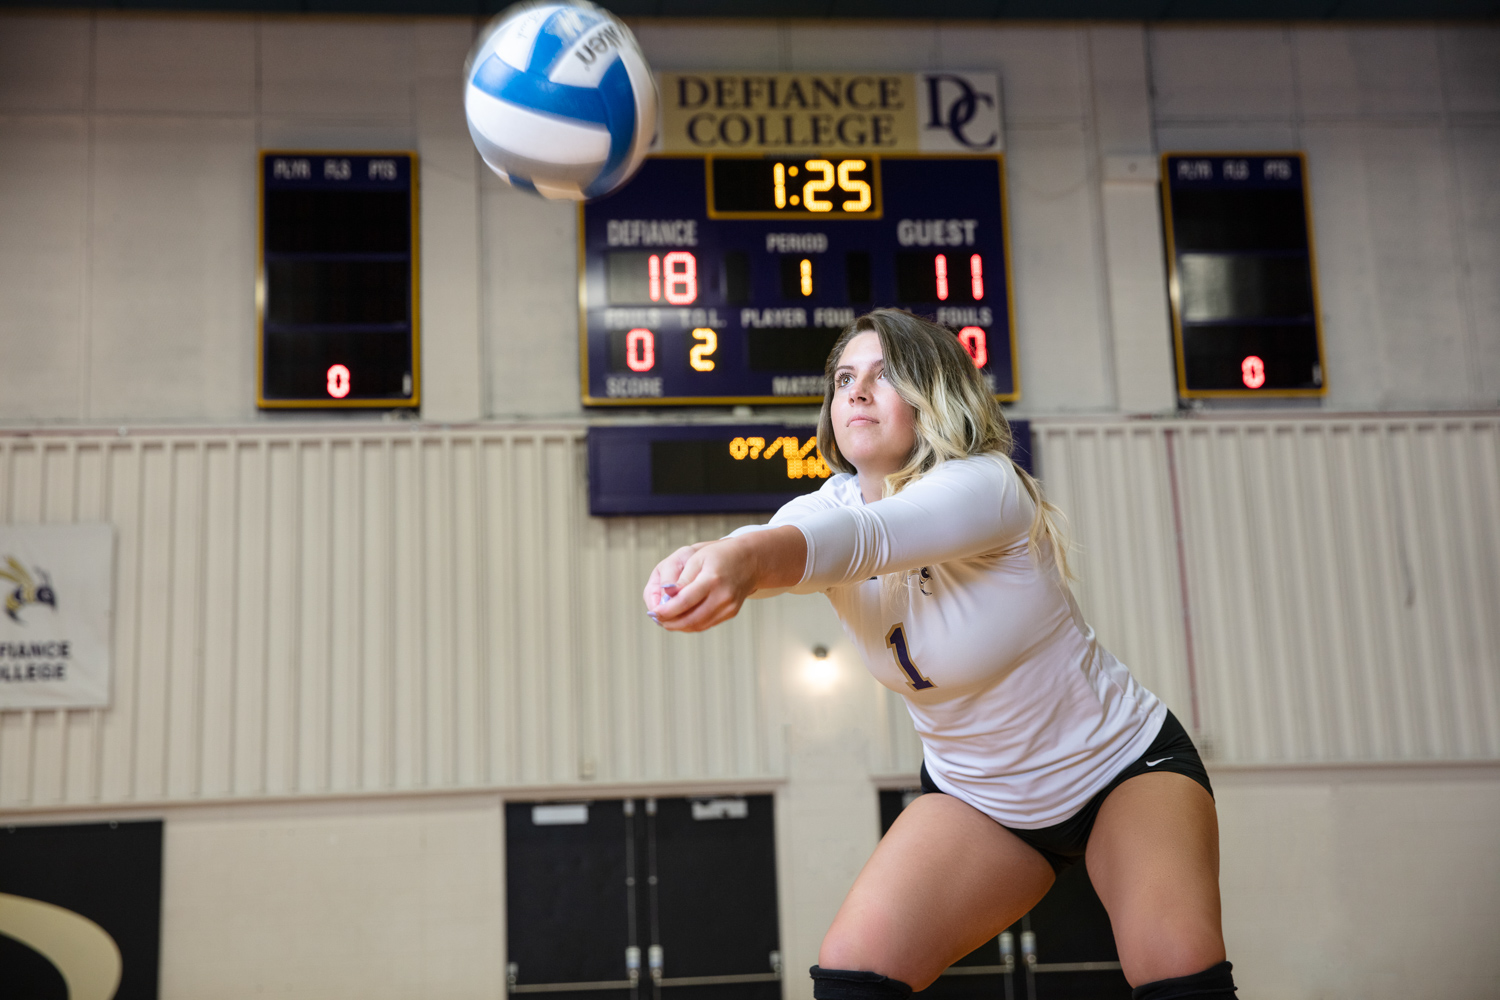 Defiance College Volleyball Player in action